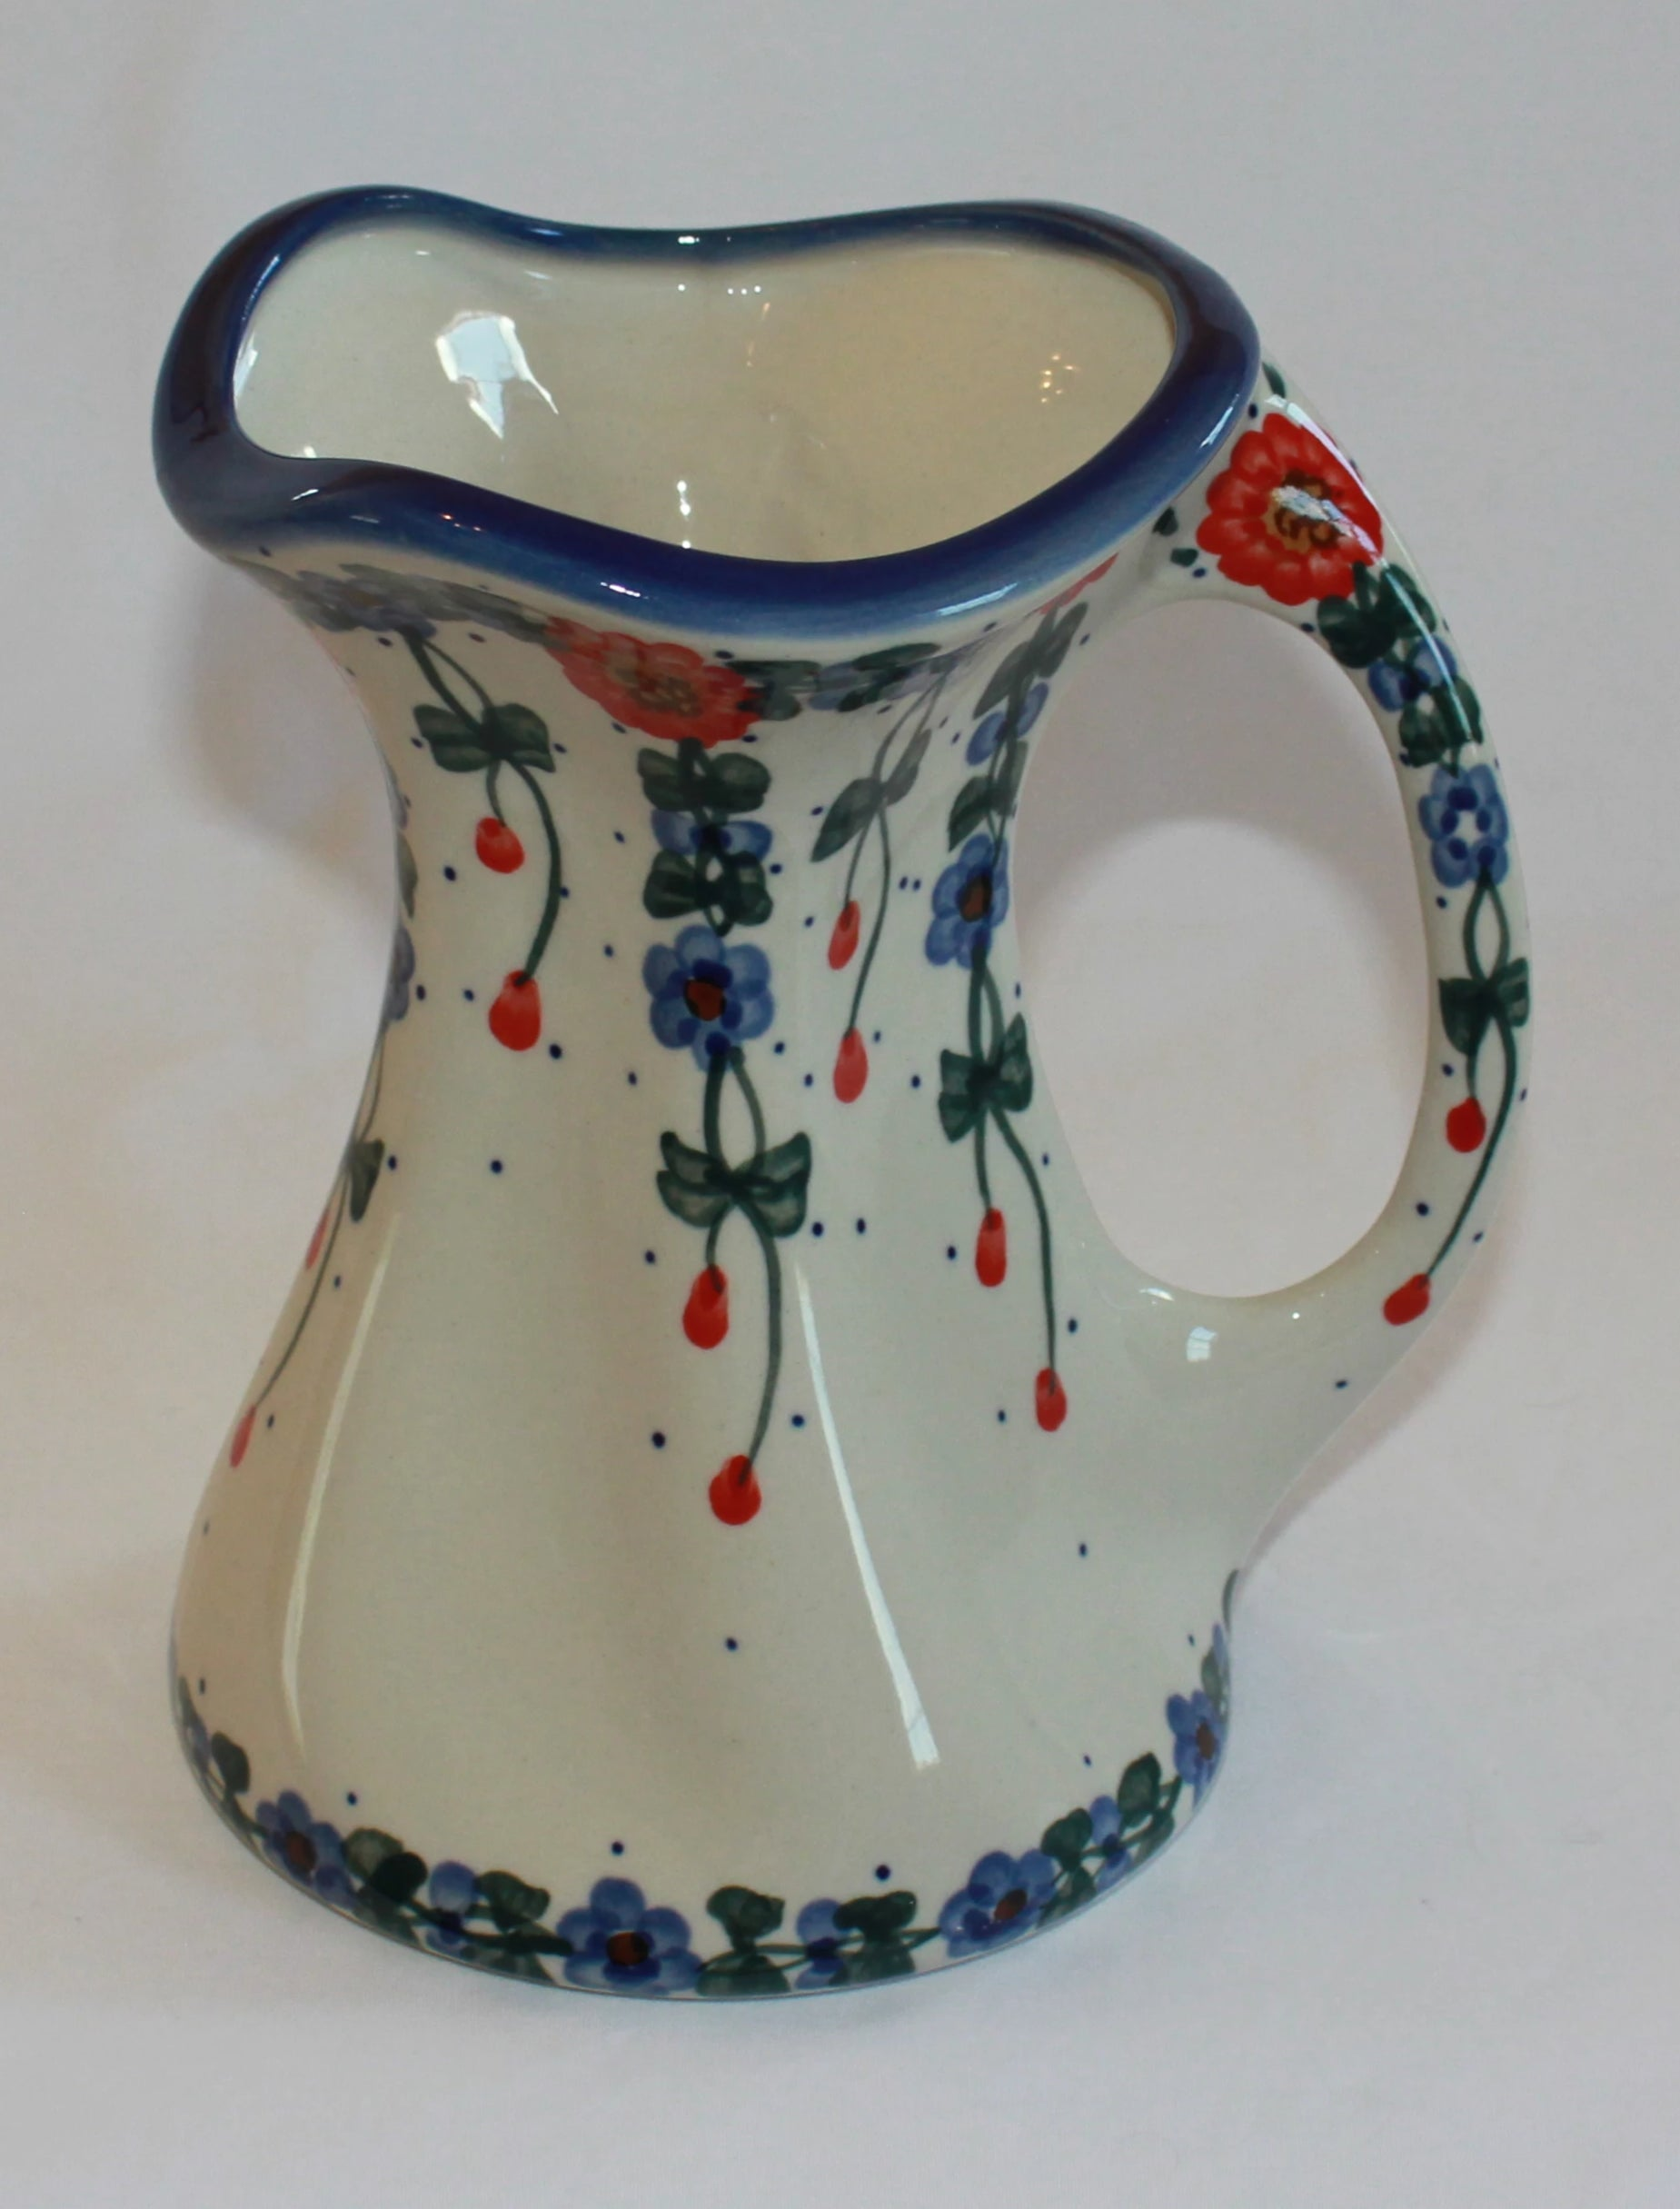 Flower Vase with Handles